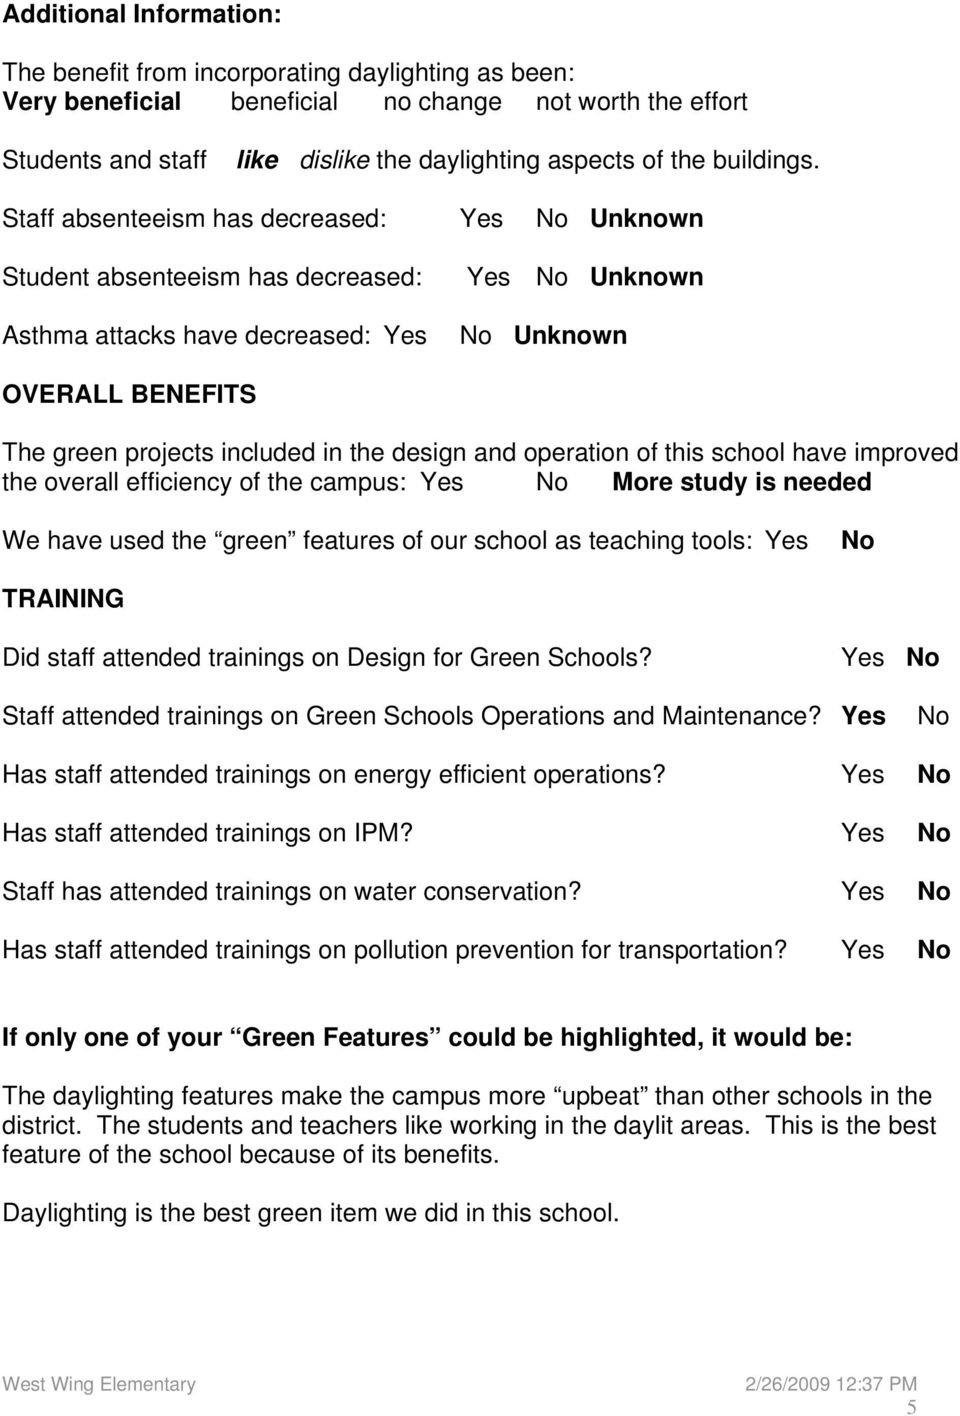 Staff absenteeism has decreased: Yes No Unknown Student absenteeism has decreased: Asthma attacks have decreased: Yes Yes No Unknown No Unknown OVERALL BENEFITS The green projects included in the